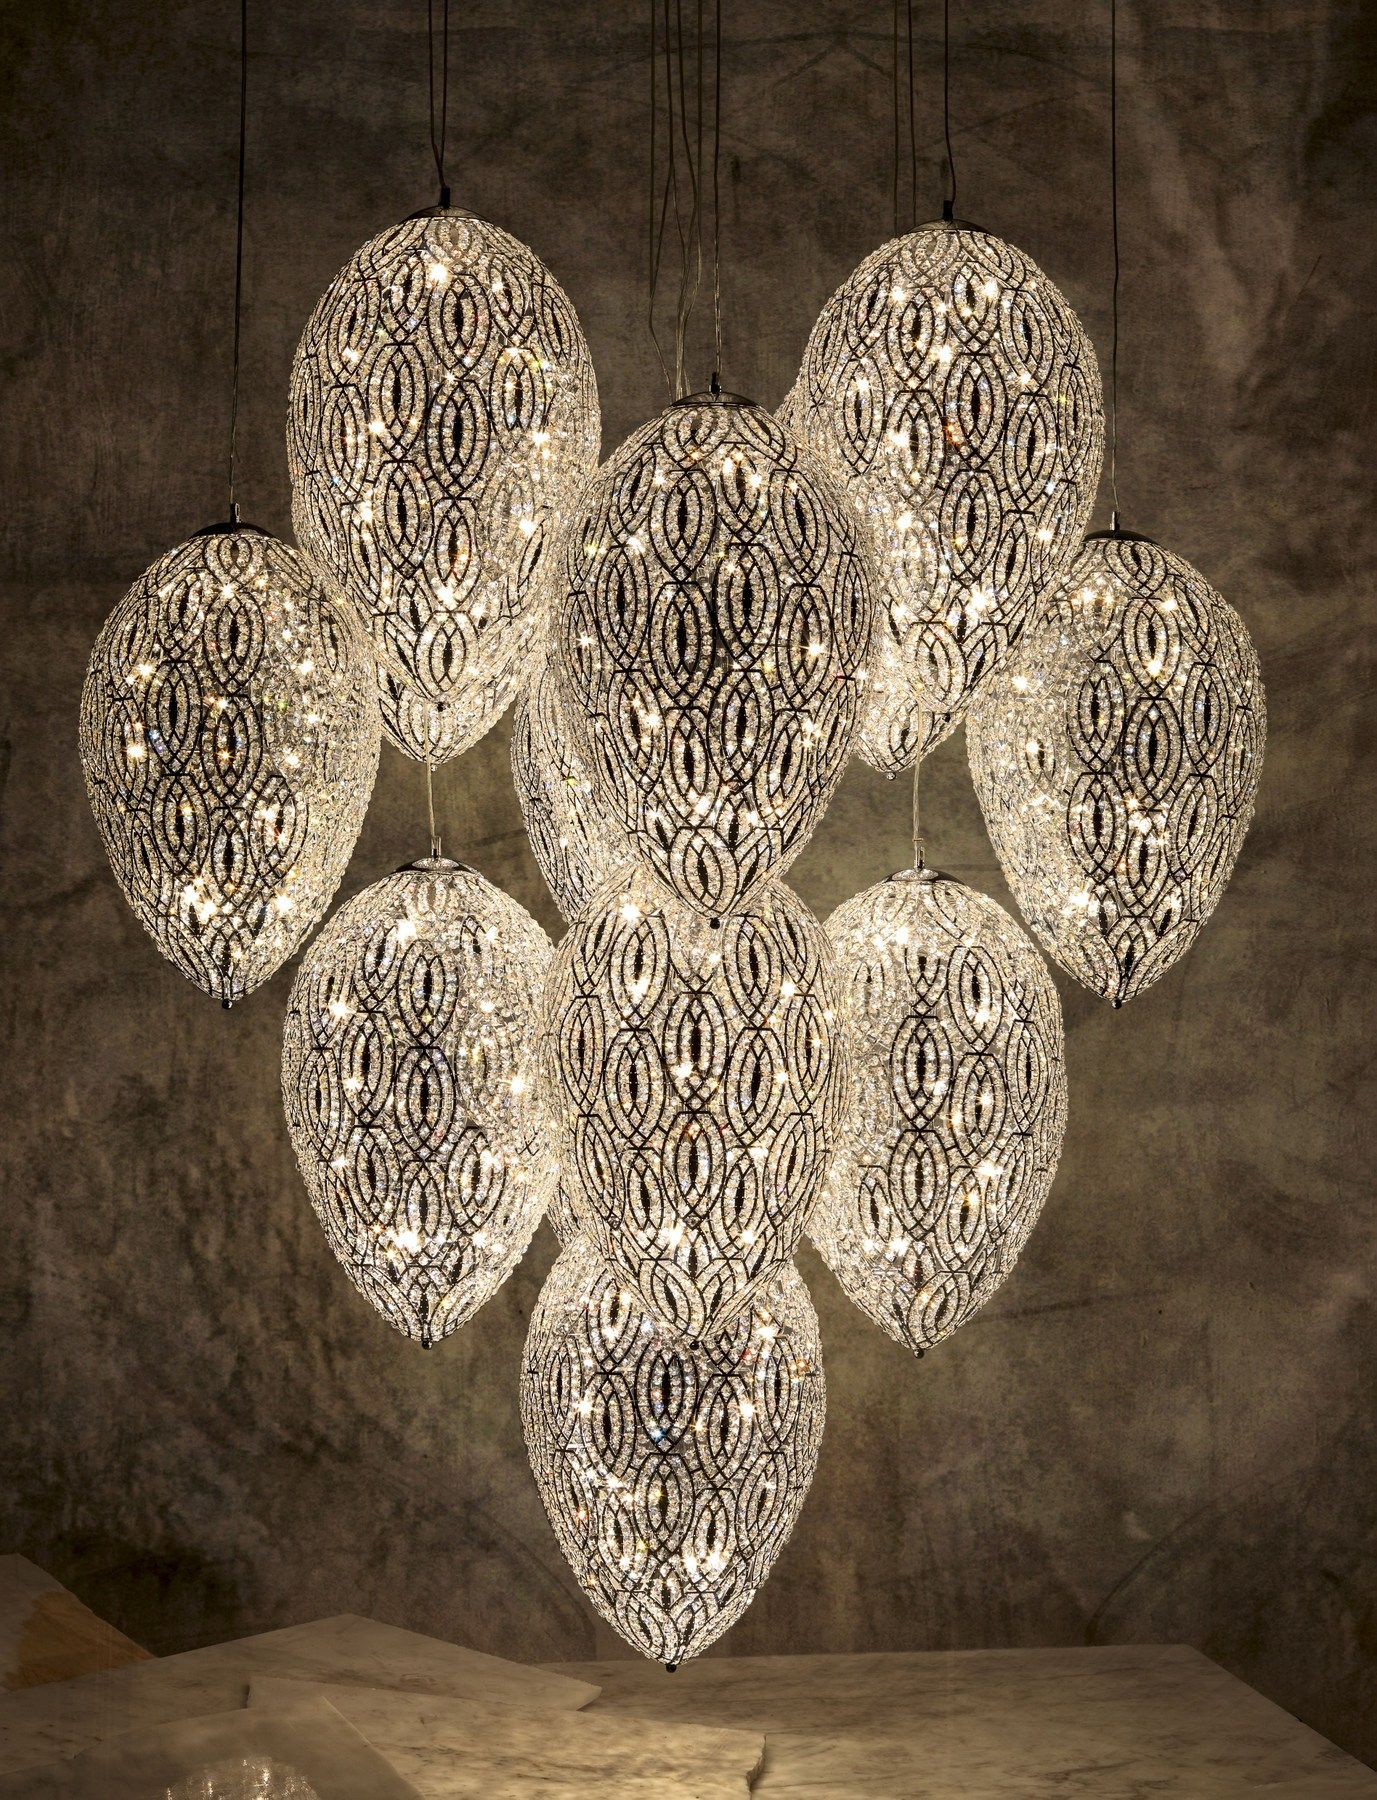 Glass chandelier EGGS ARABESQUE 7511012.00 VG Lighting Collection by VGnewtrend